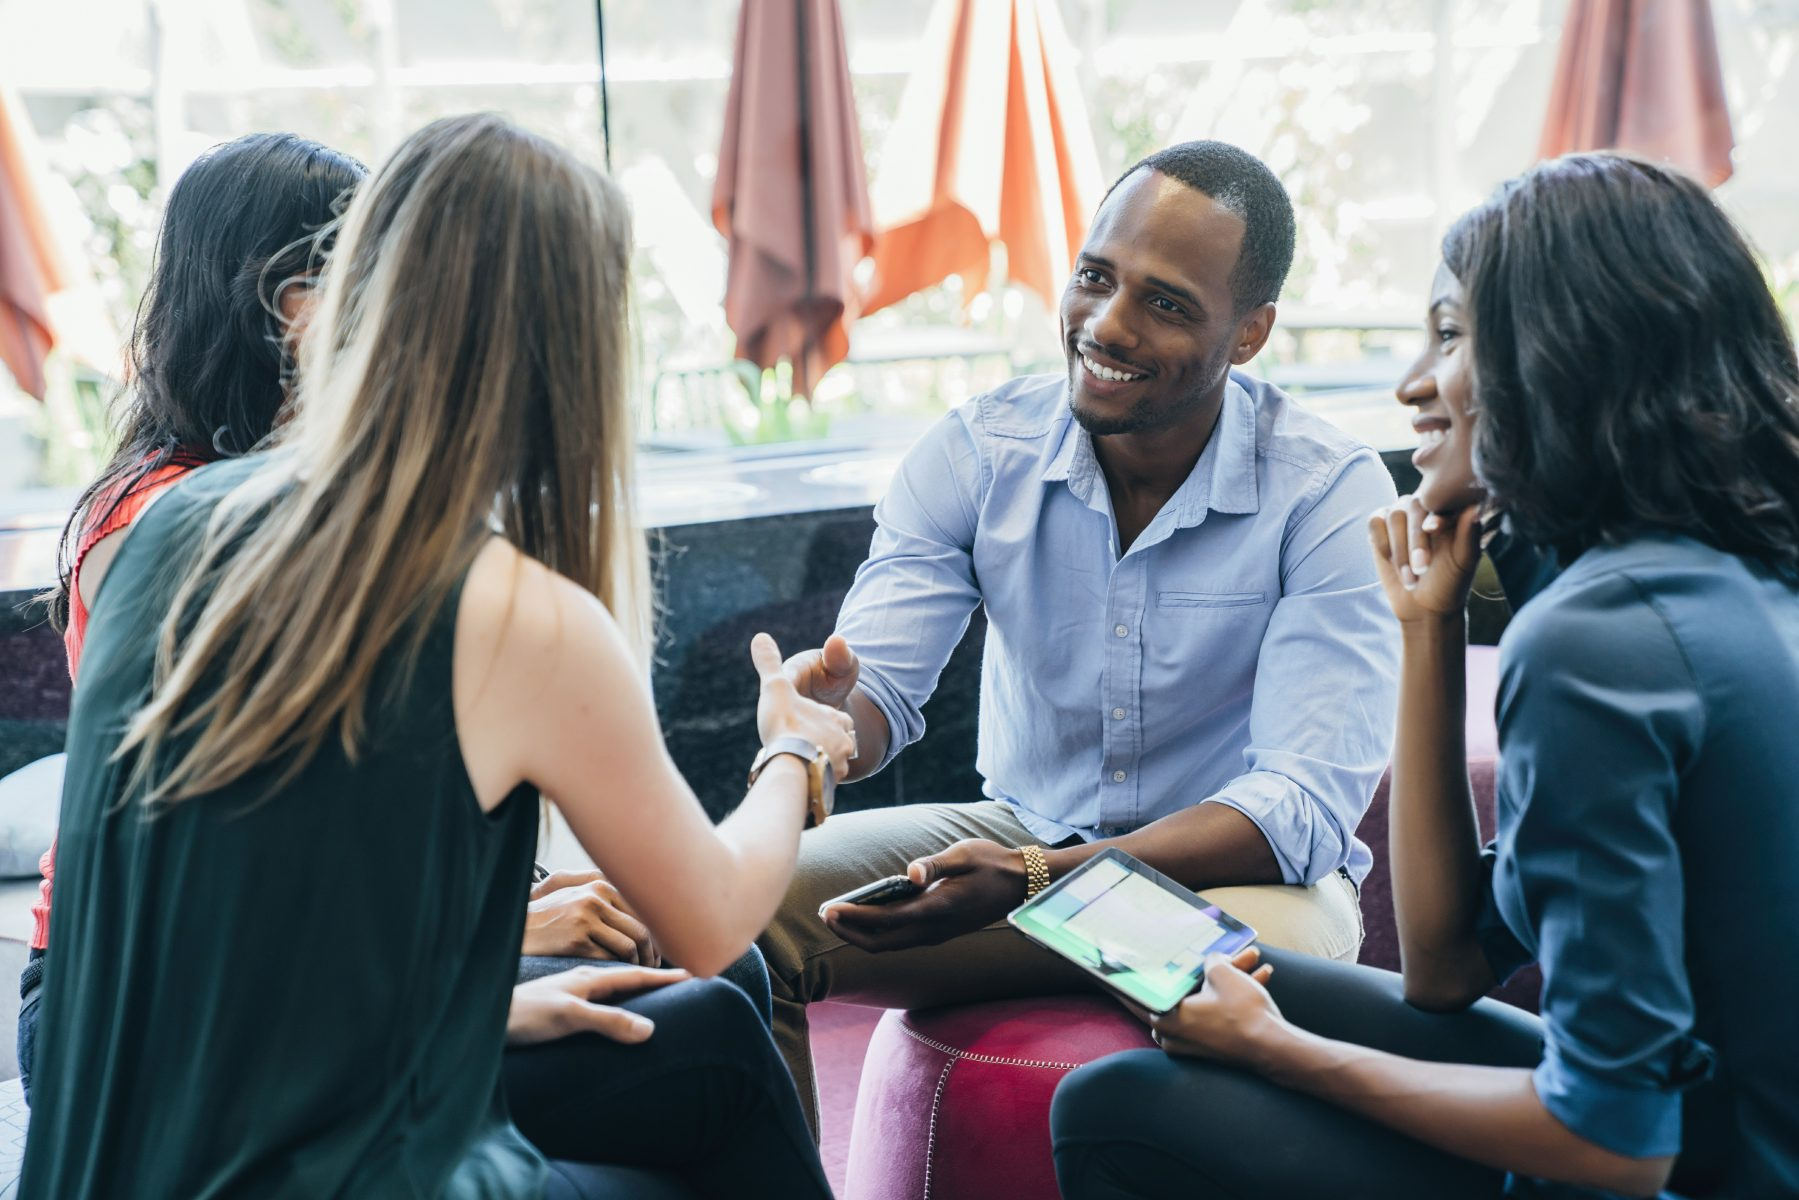 Find out how to Network for that dream job